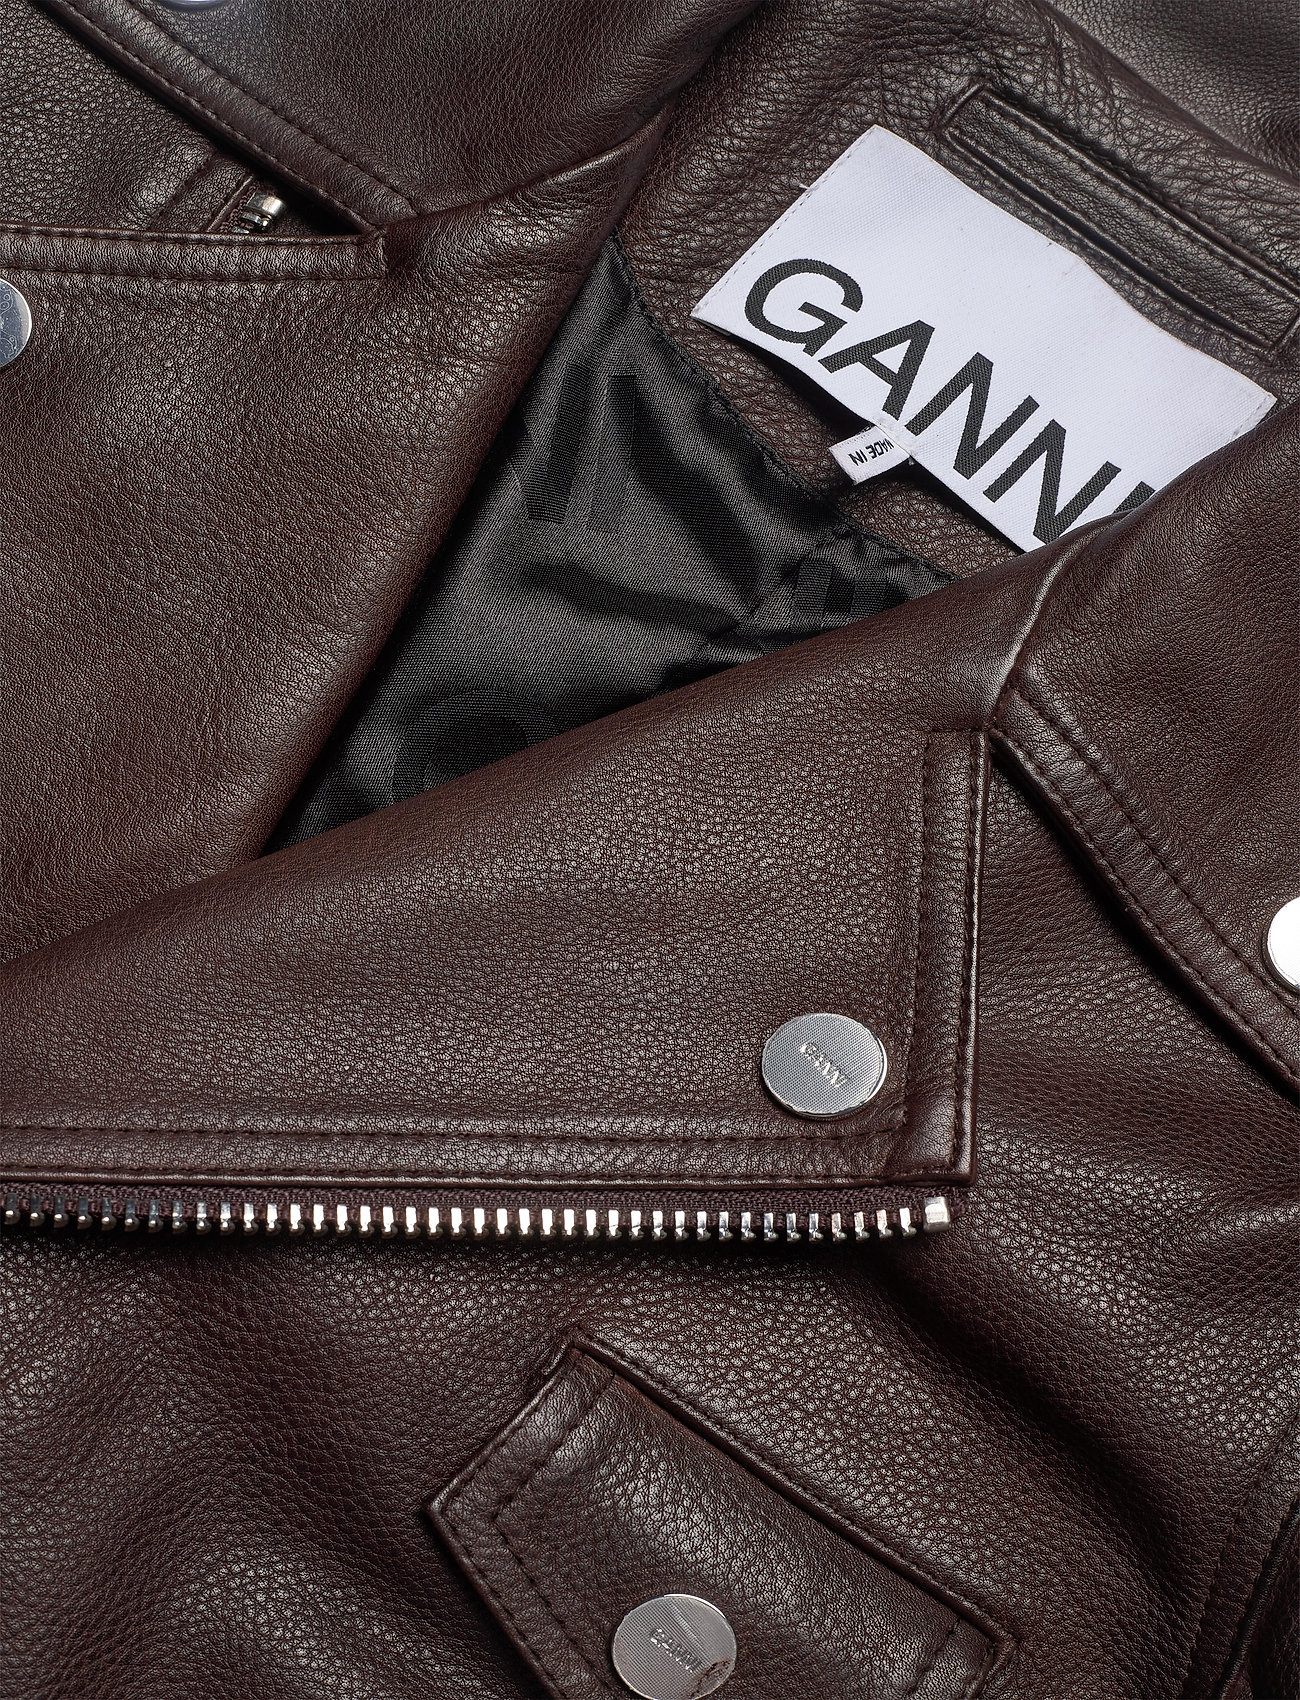 Light Grain Leather  - Ganni